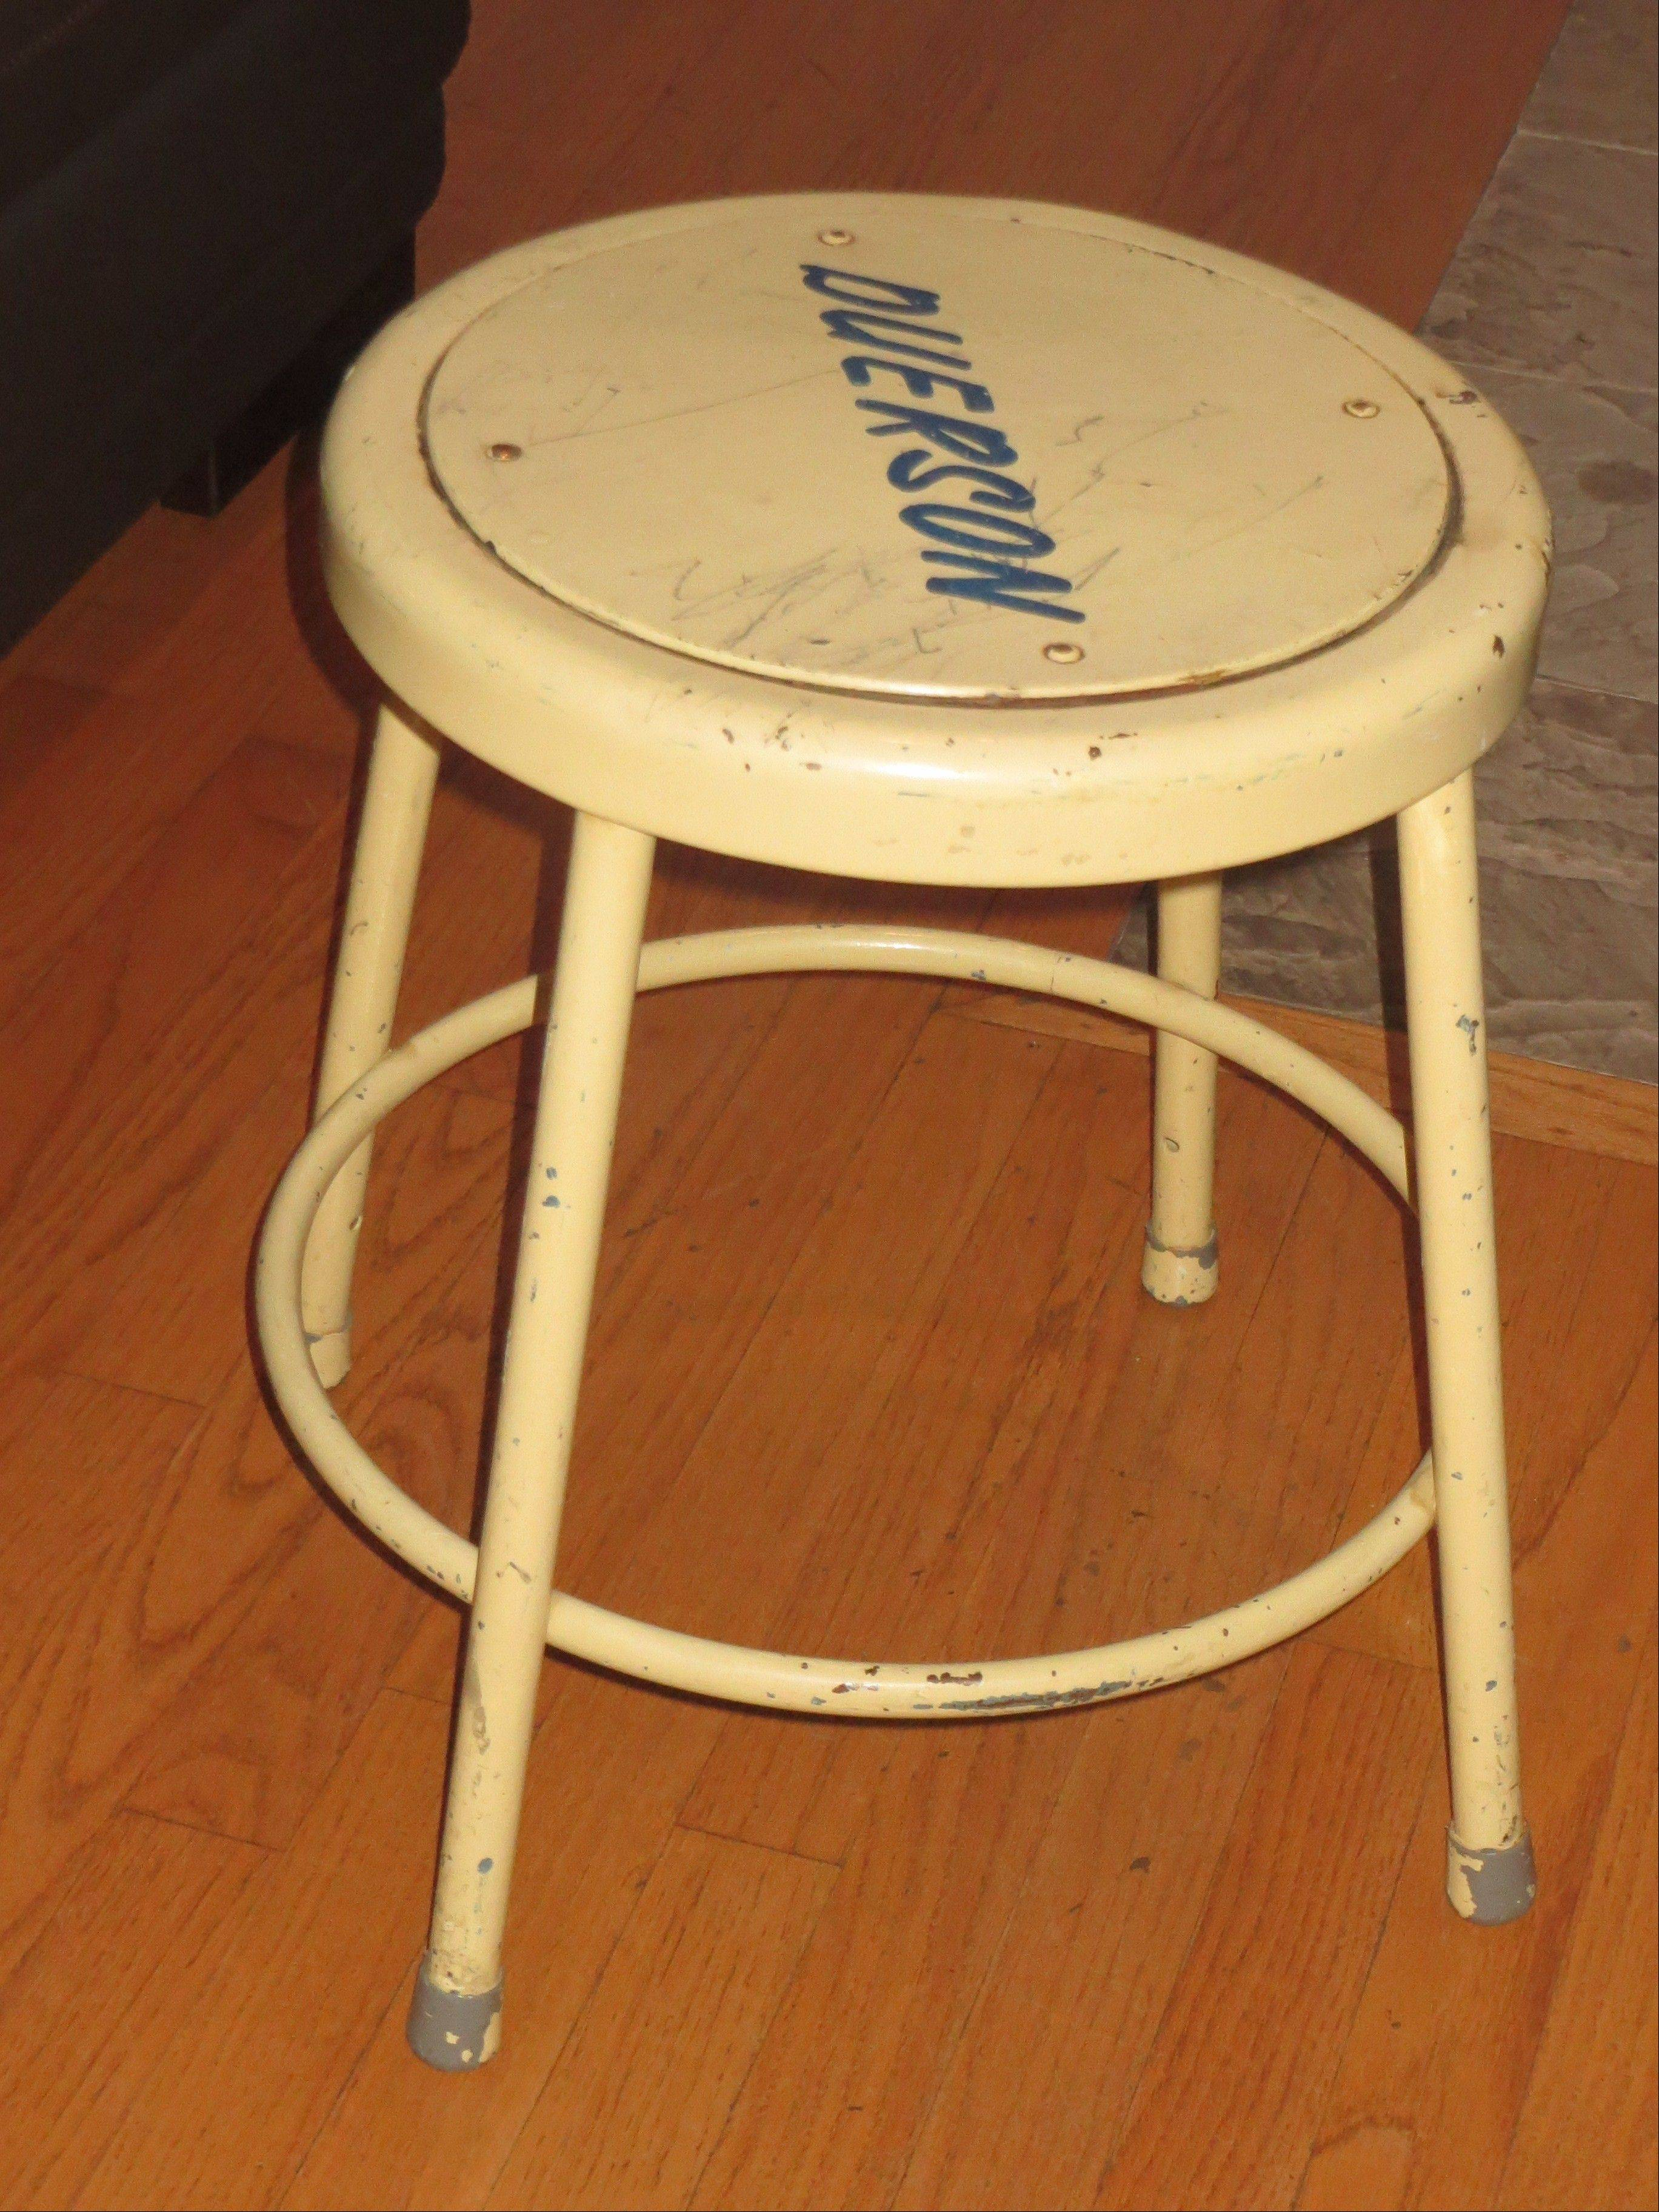 A constant reminder of Dave Duerson, this stool from the Notre Dame locker room remains in frequent use in the apartment Tregg Duerson shares with his two roommates.